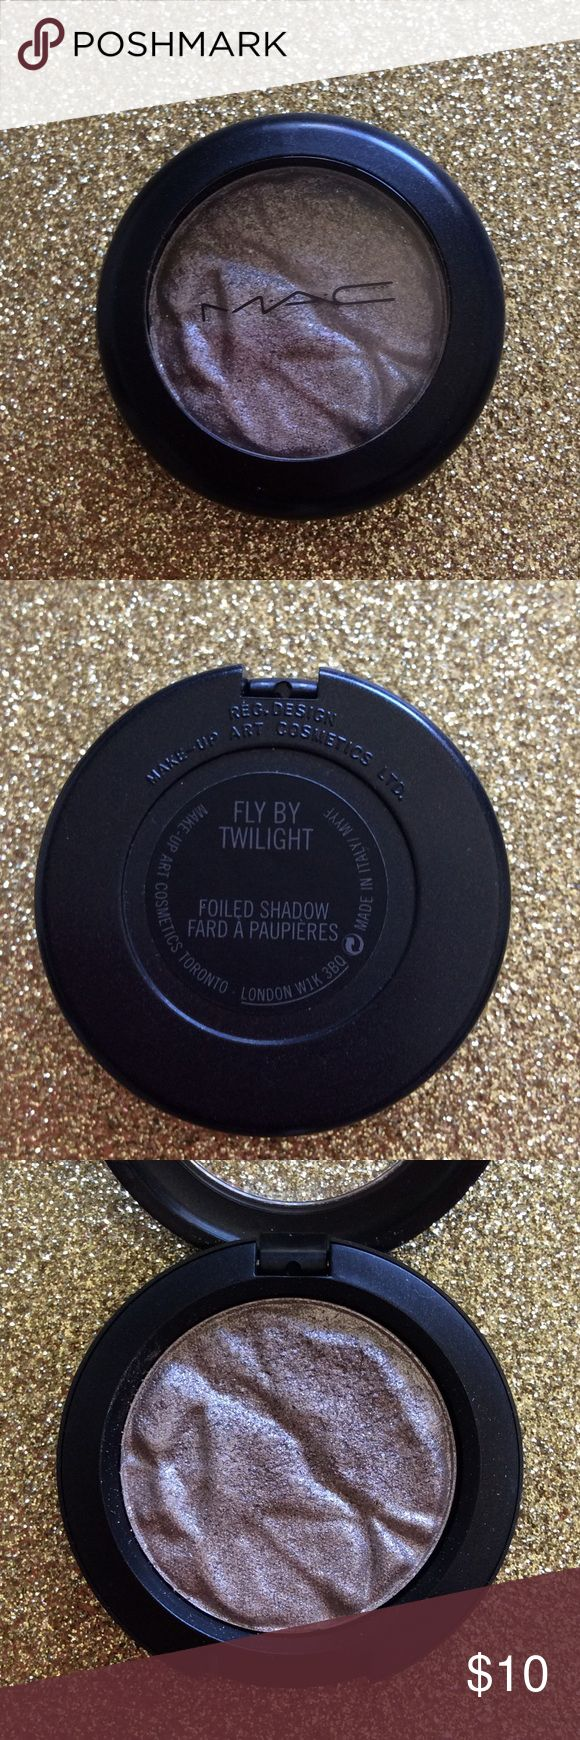 MAC Cosmetics -Fly By Twilight Foiled Shadow MAC Cosmetics Foiled Shadow a wet/dry formula with a metallic finish, lightweight. Color: Fly By Twilight. Used a couple of times (I tried to make it work with my tones. Too Metallic for me.) MAC Cosmetics Makeup Eyeshadow